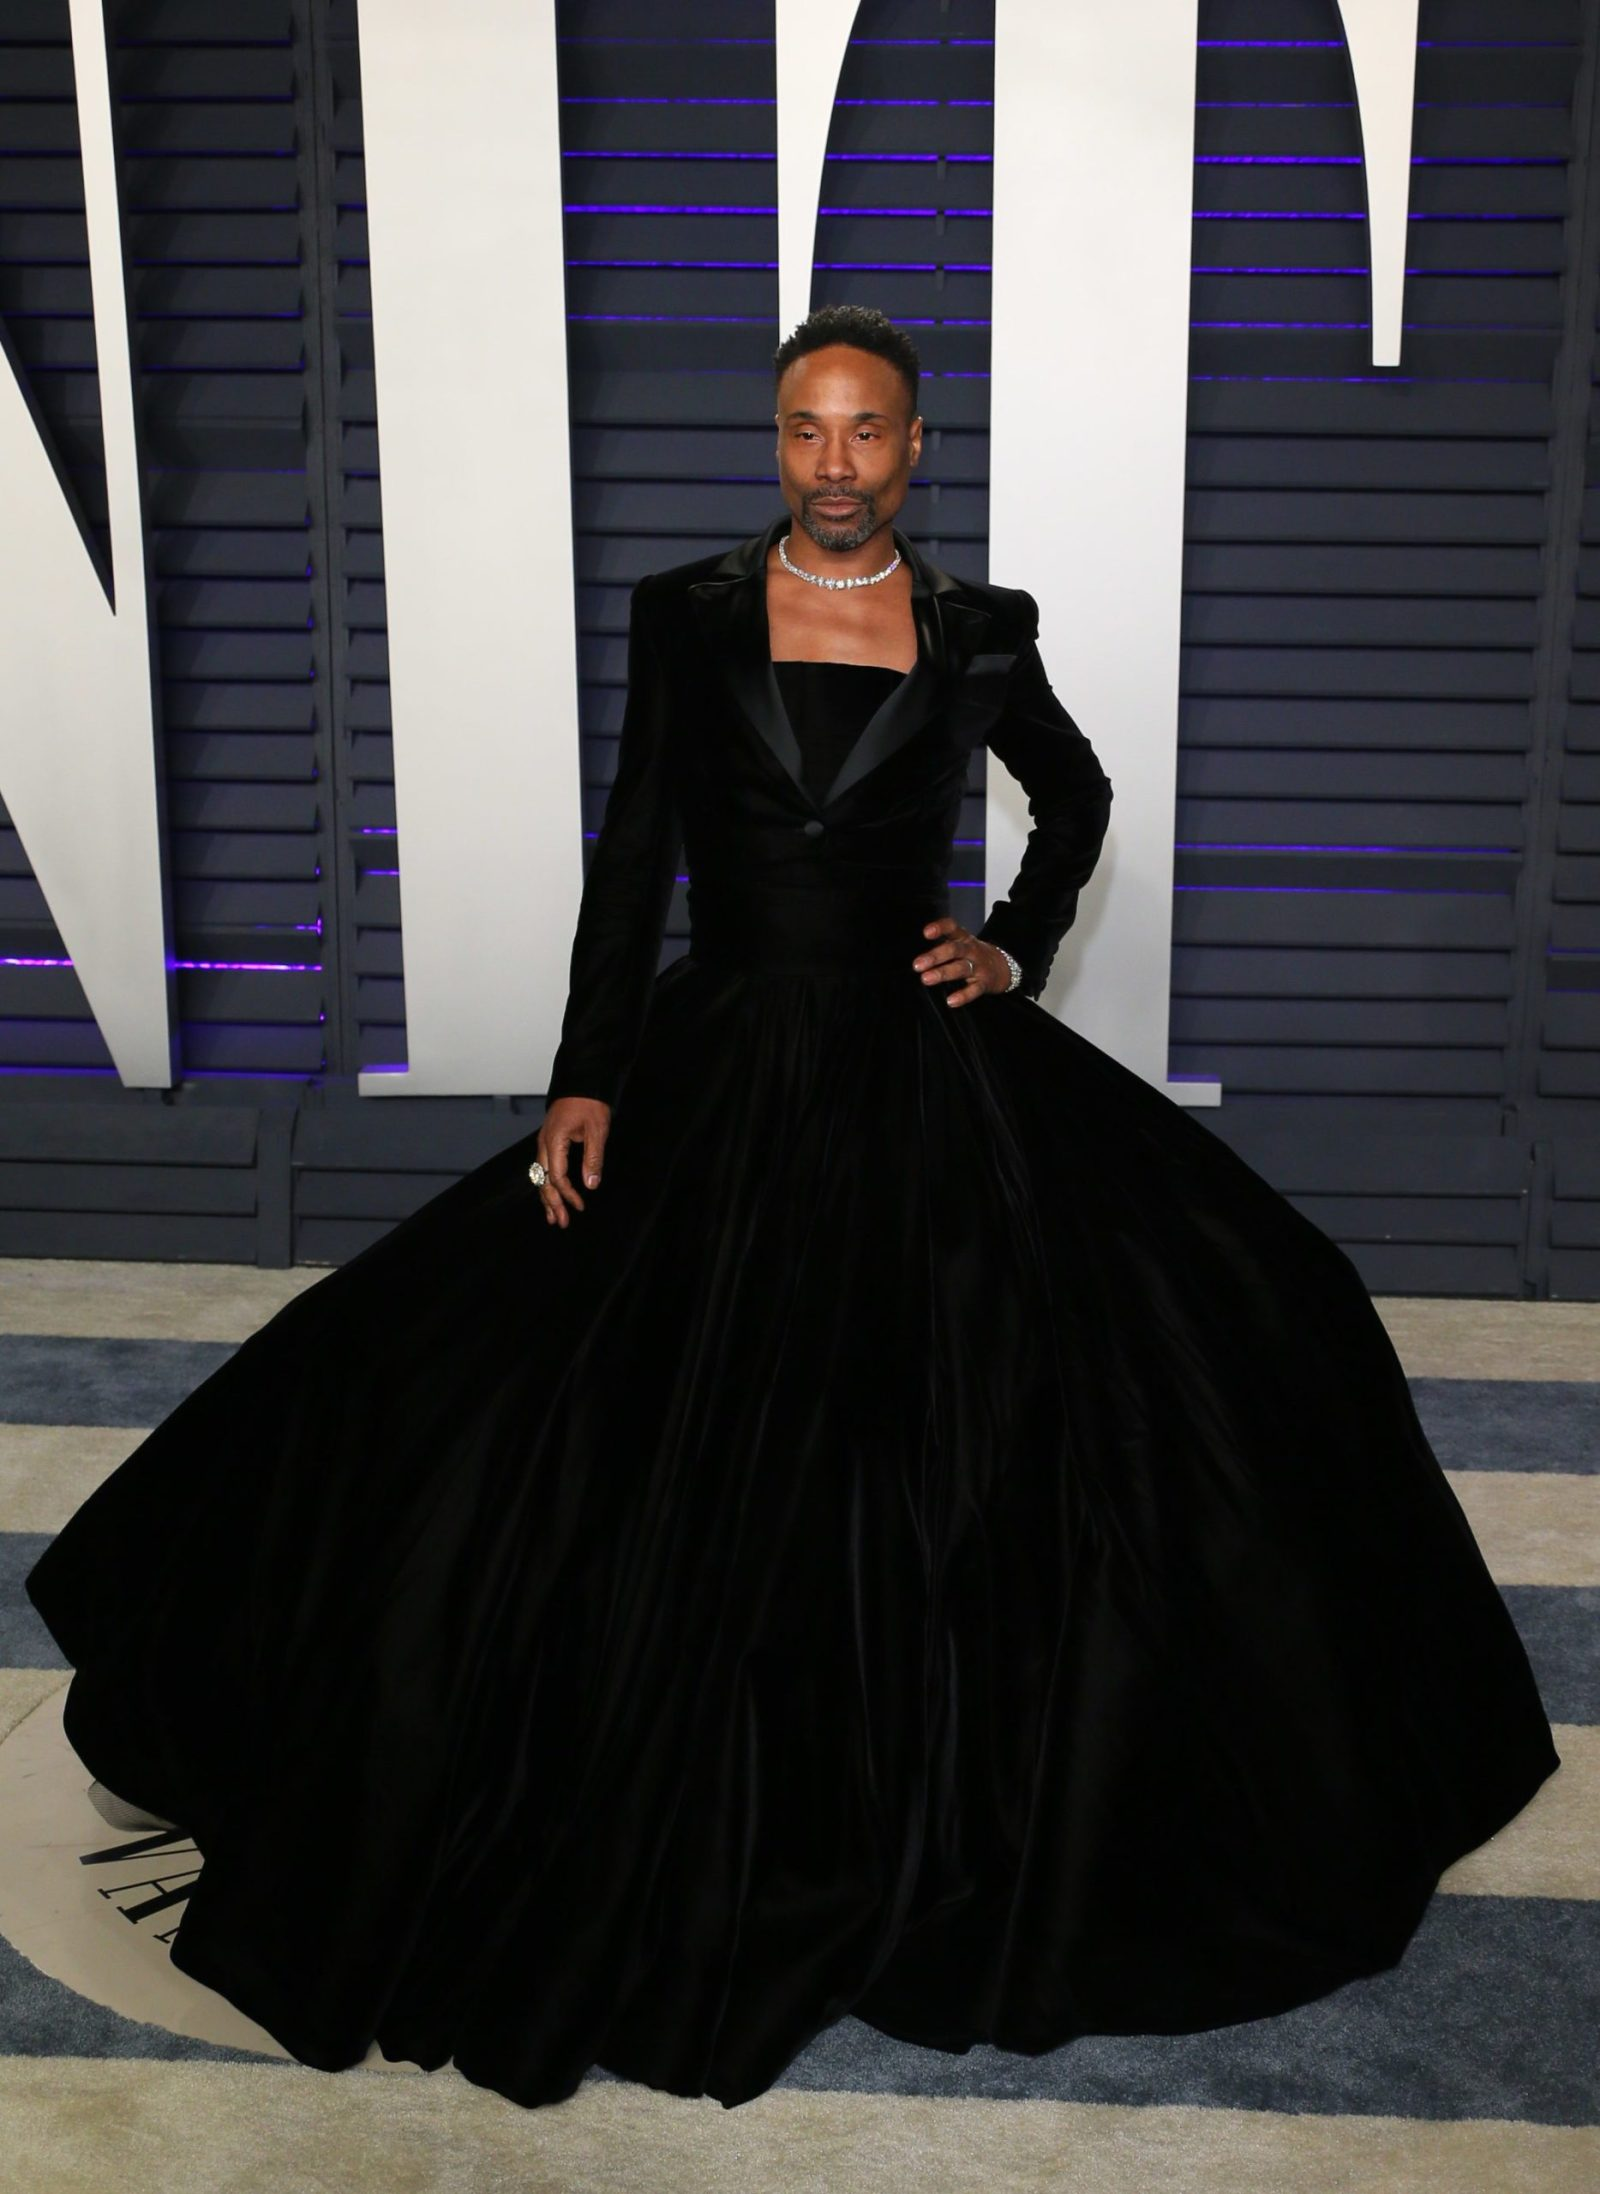 Billy Porter attends the 2019 Vanity Fair Oscar Party following the 91st Academy Awards